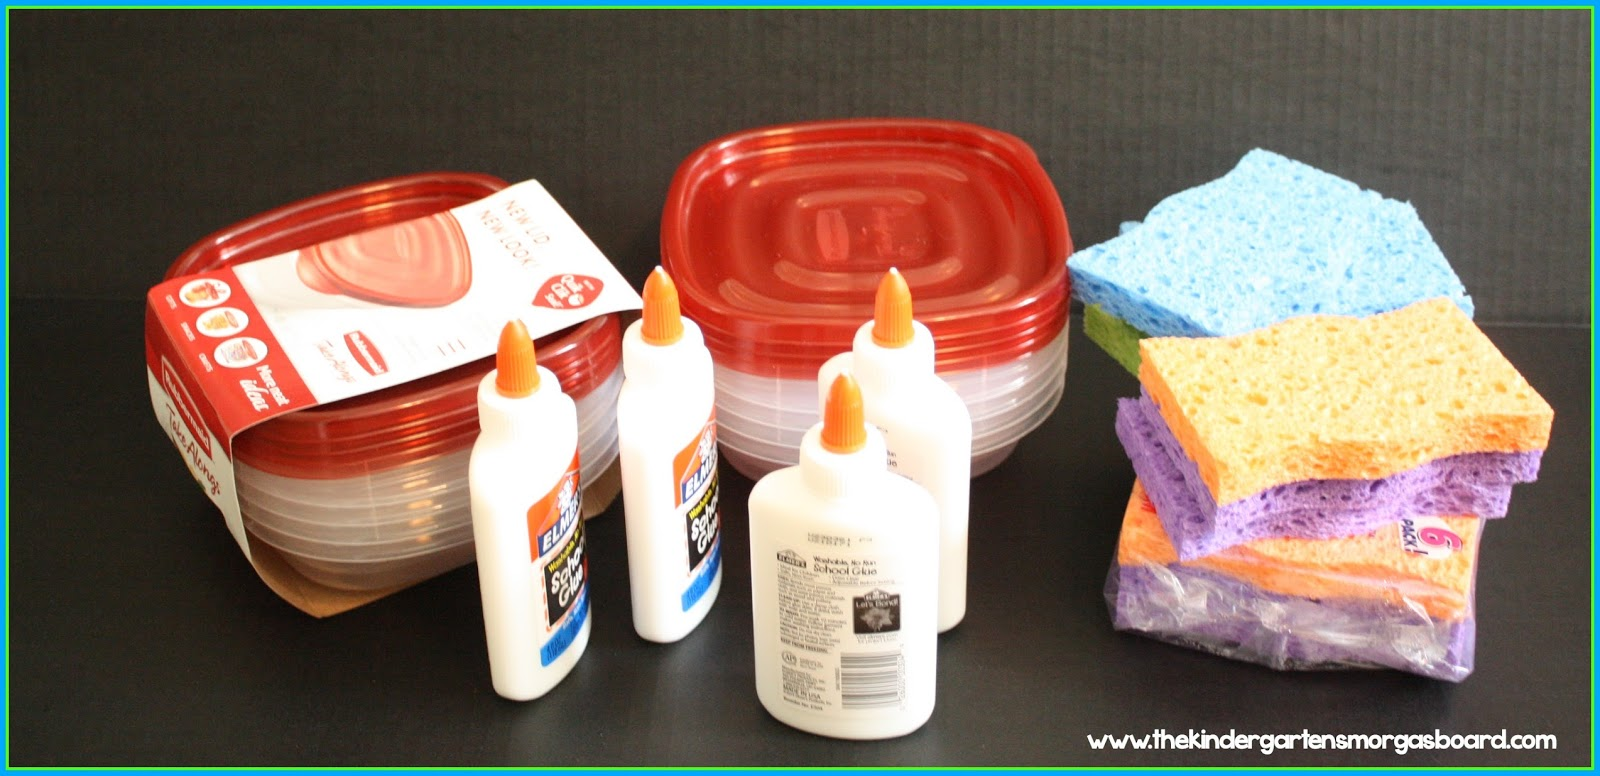 glue sponge supplies.jpg